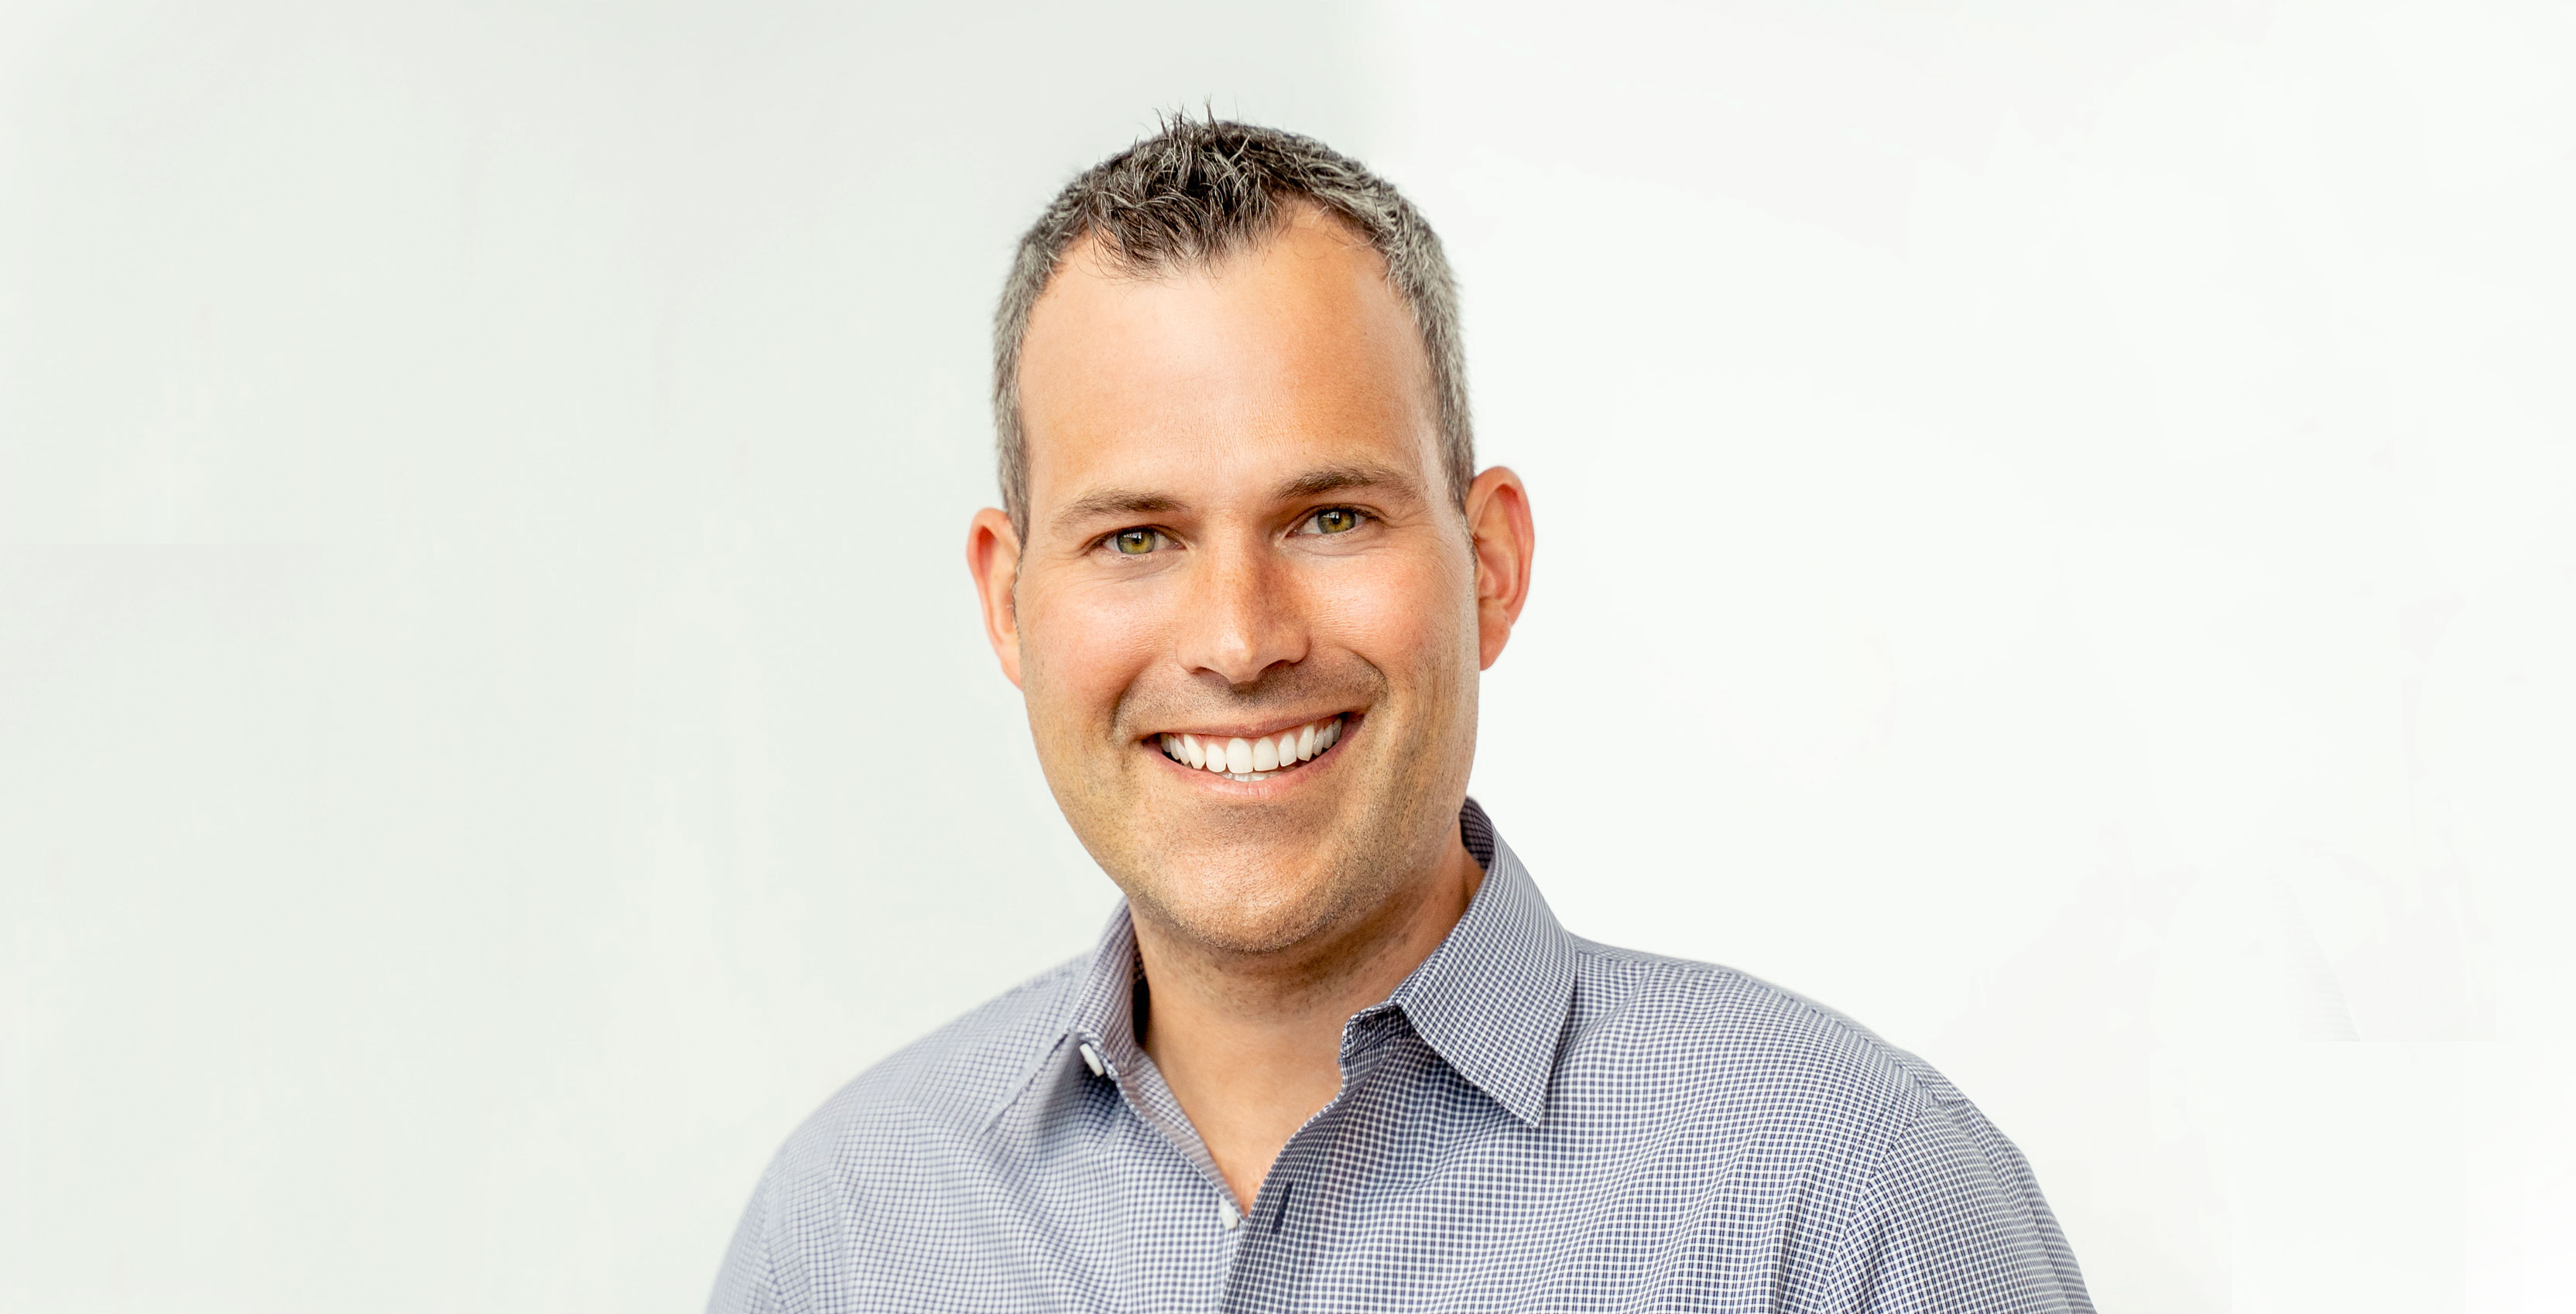 Former Apple Canada managing director Chris Rogers is Instacart's new VP of retail